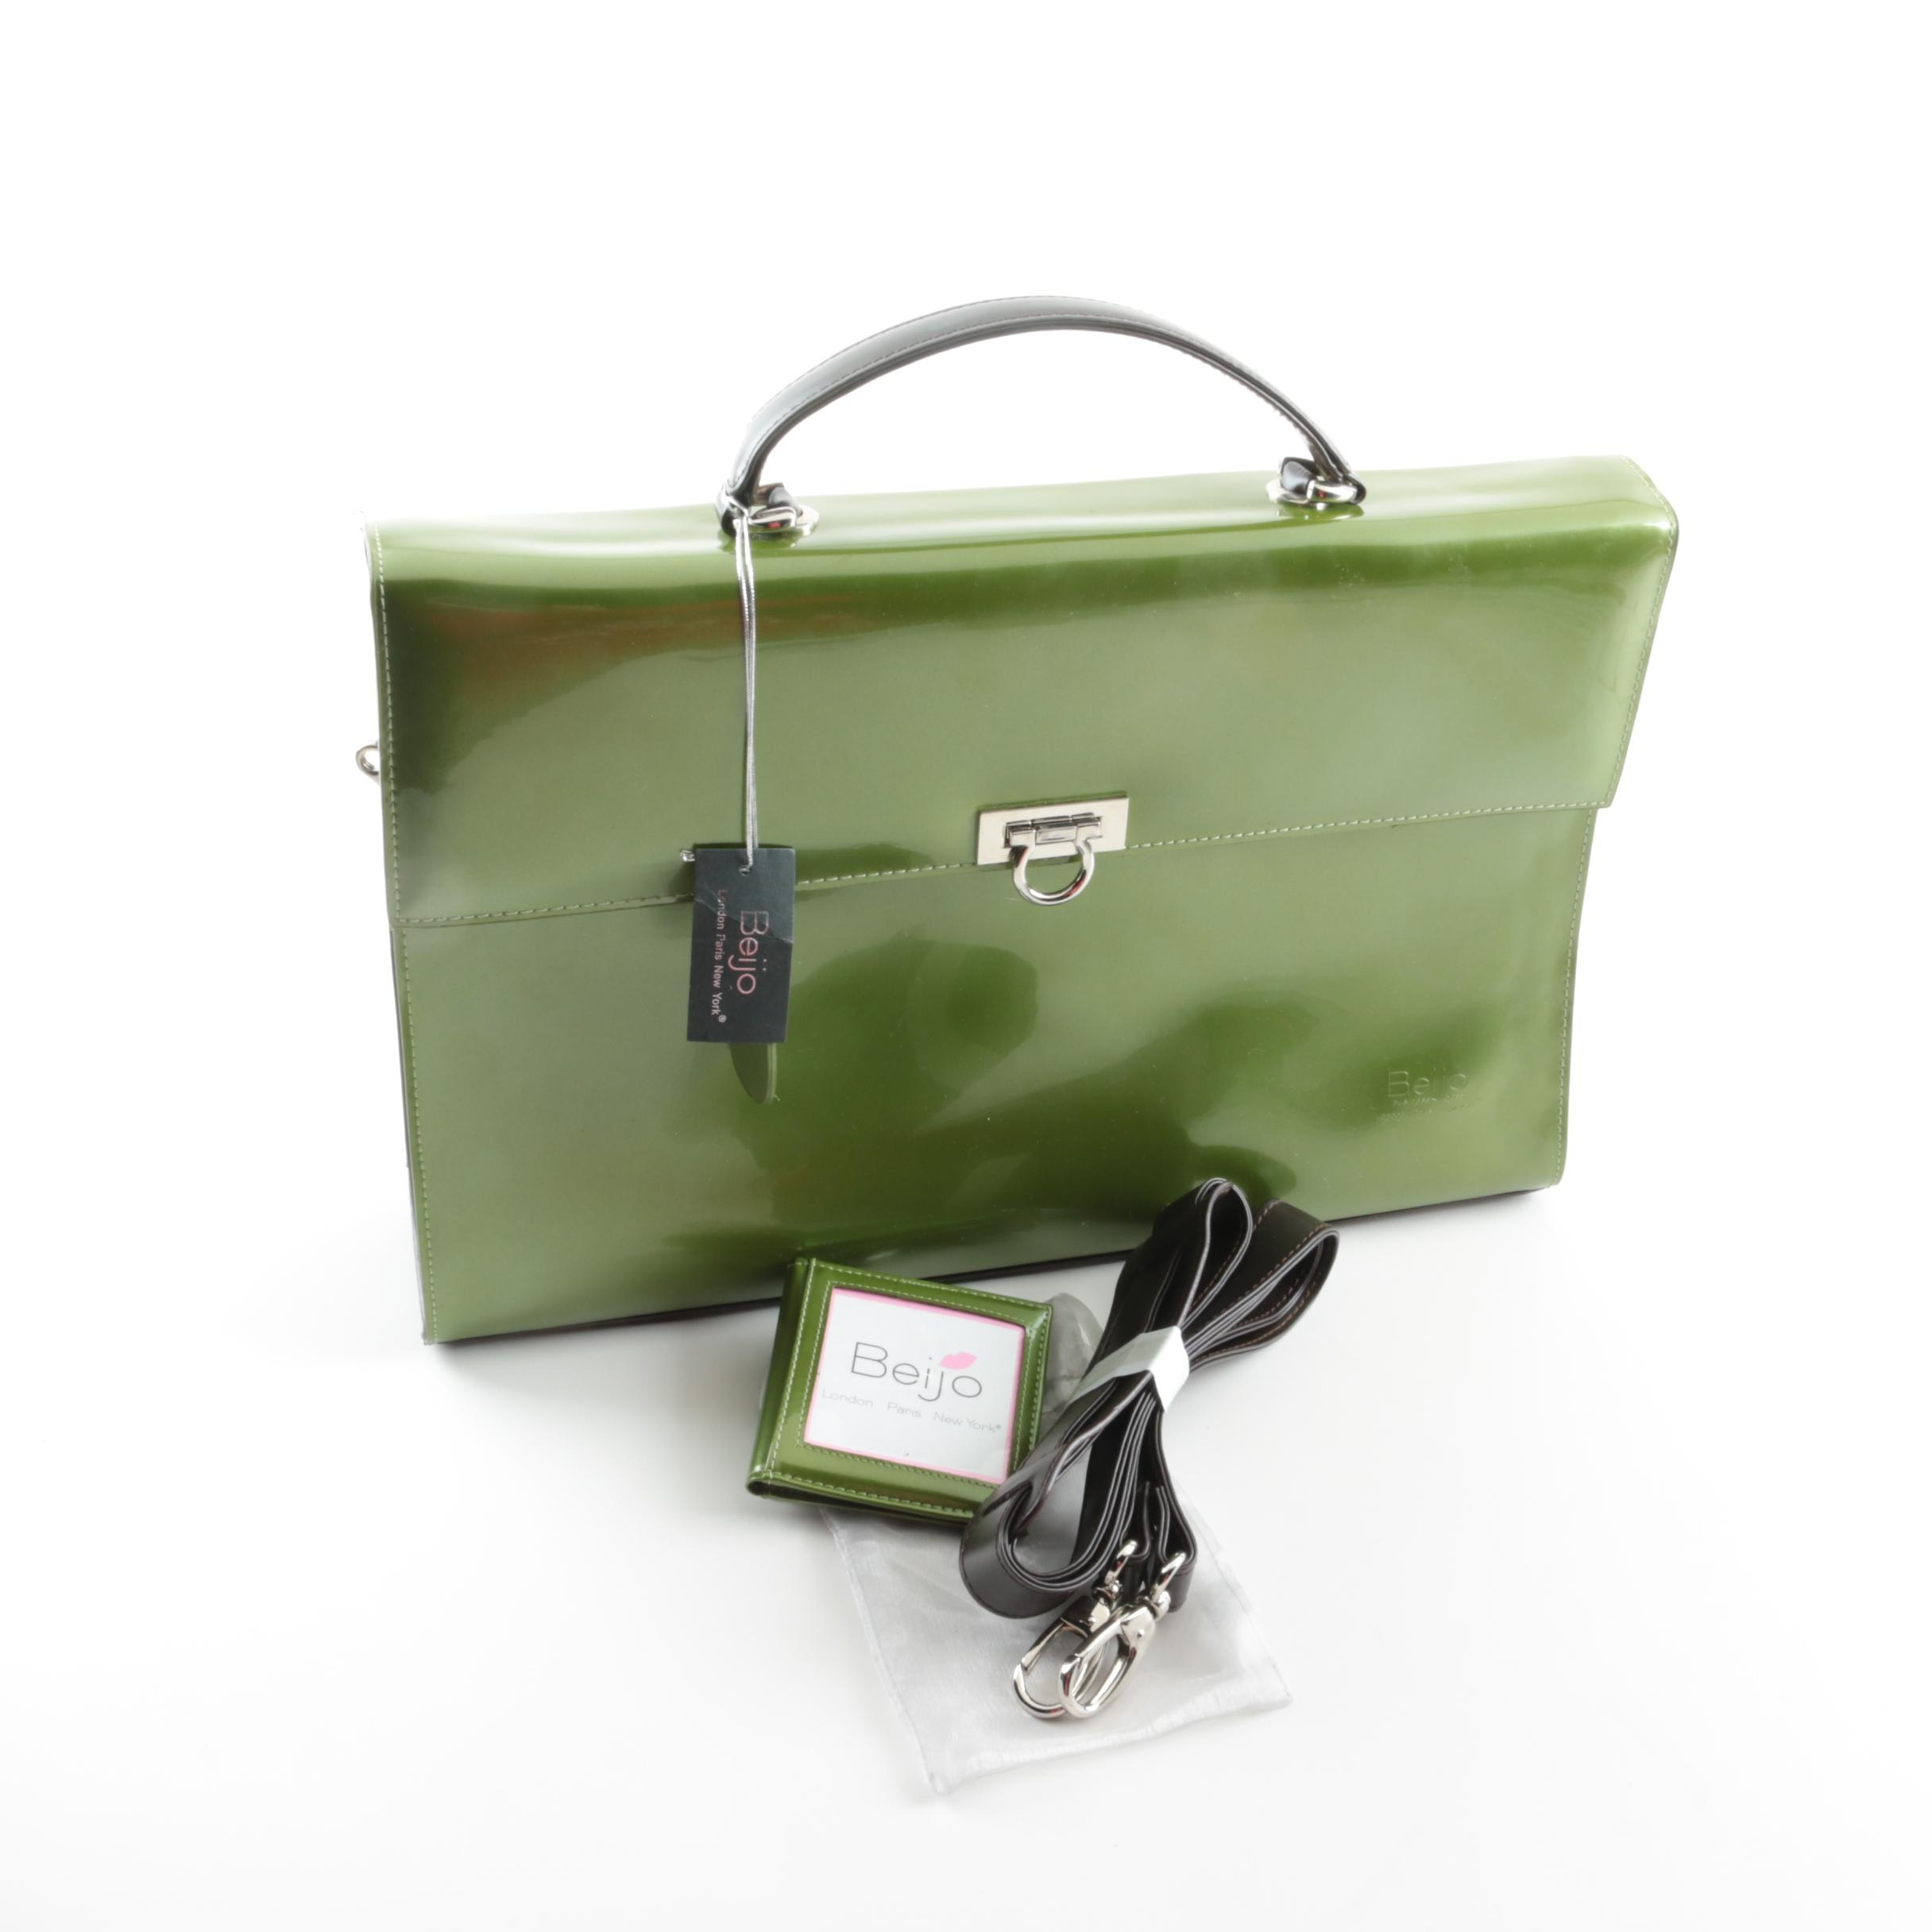 Beijo Avocado Colored Briefcase